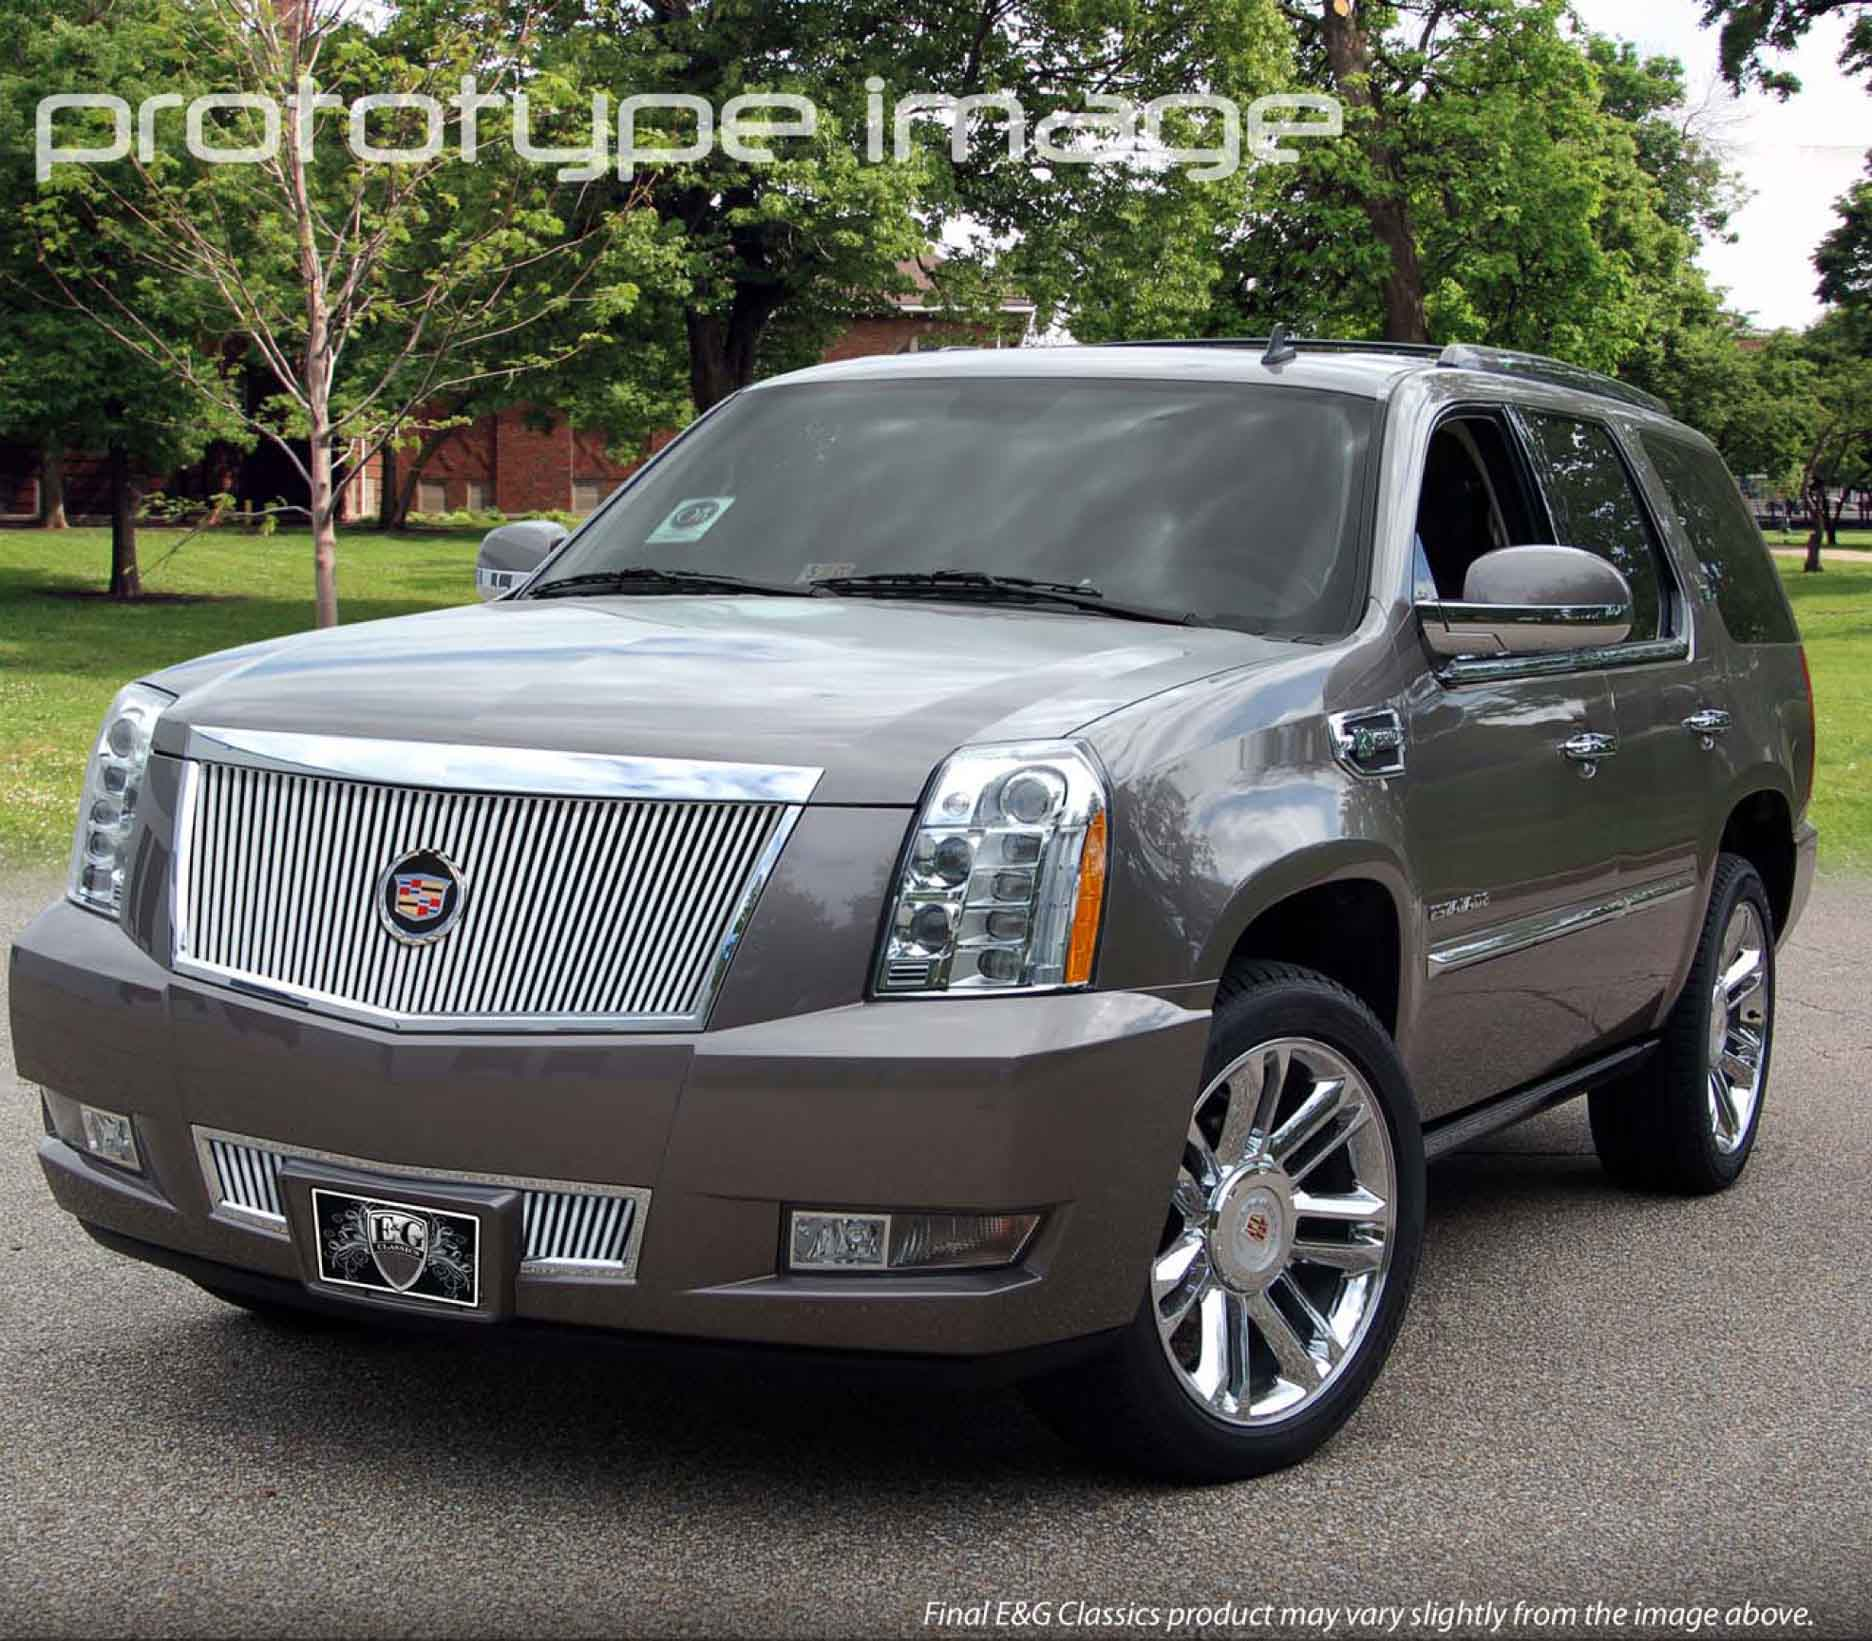 Escalade Aftermarket Accessories Images